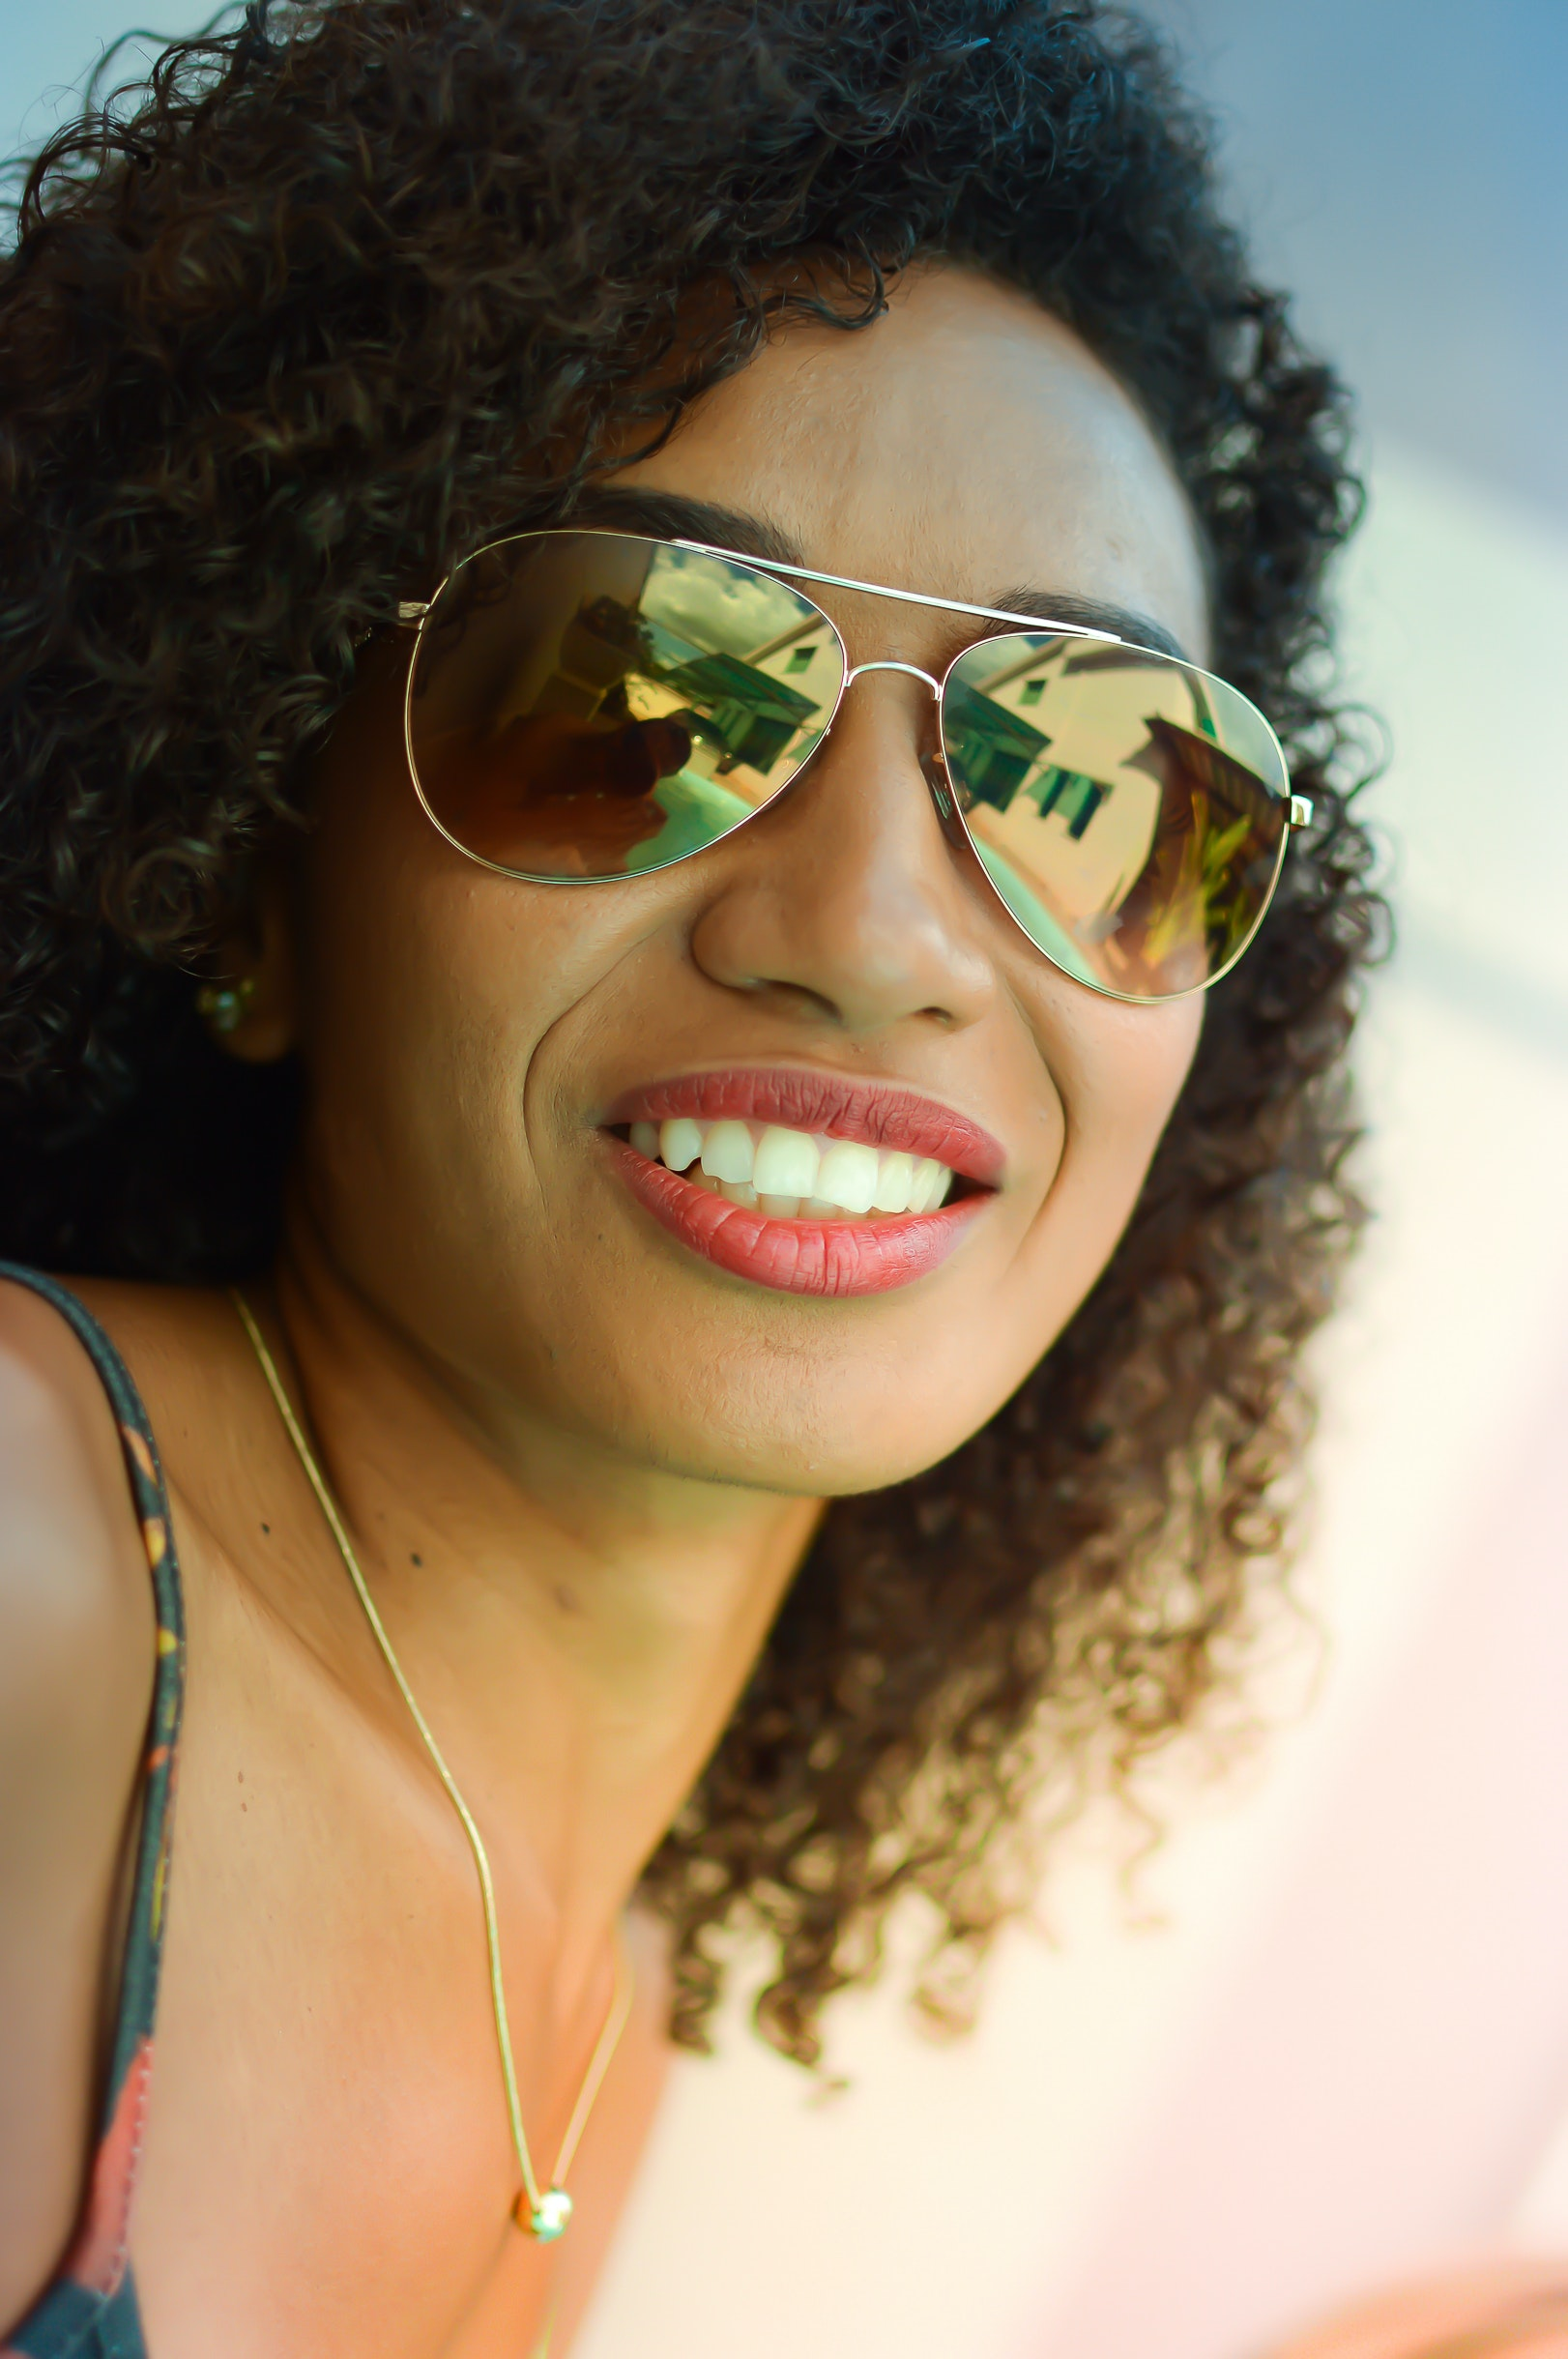 Girl In Black Framed Sunglasses With Color On Her Face